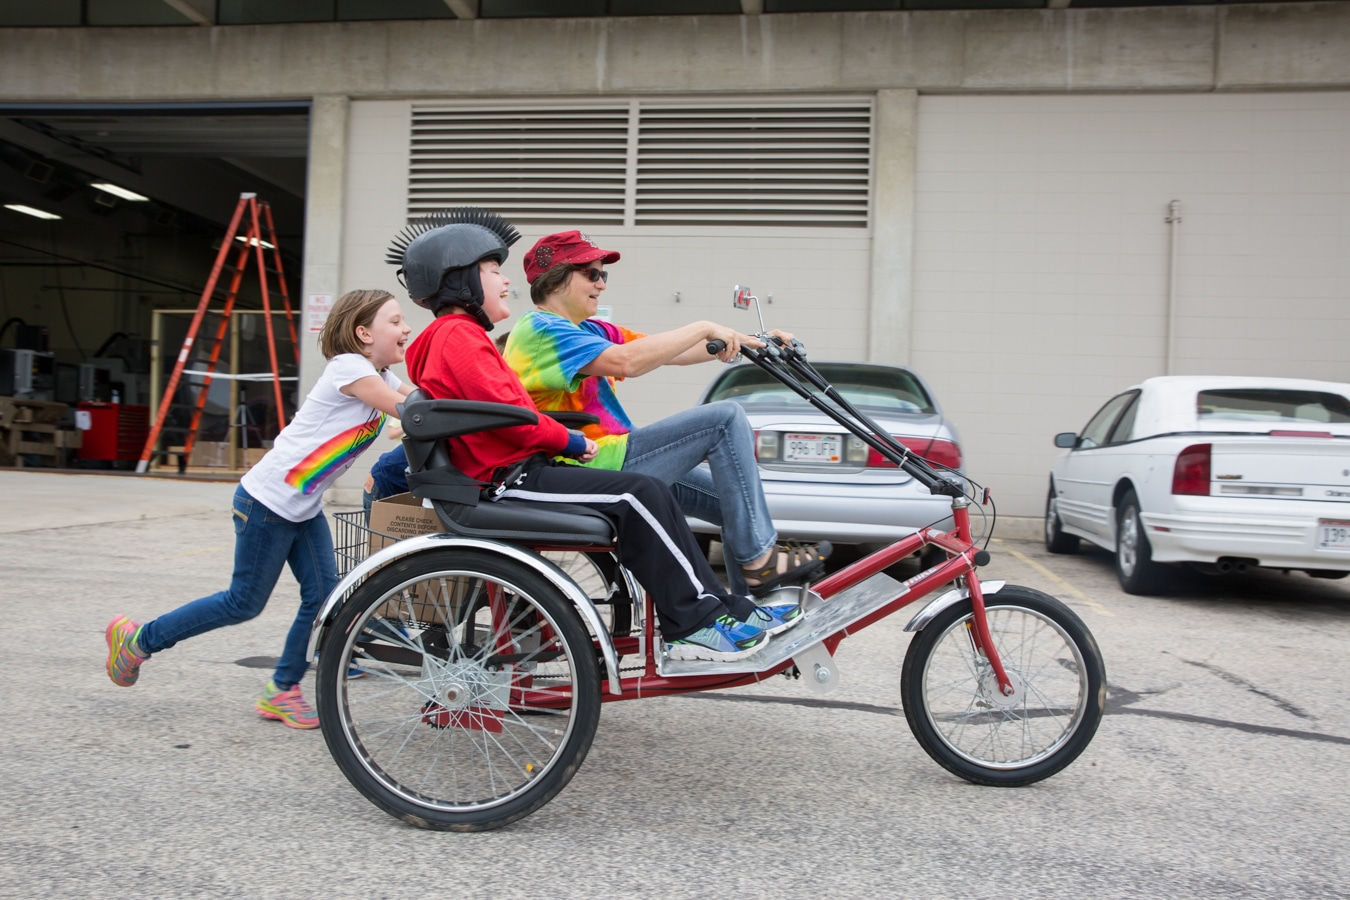 Mason and women on trike and two children behind